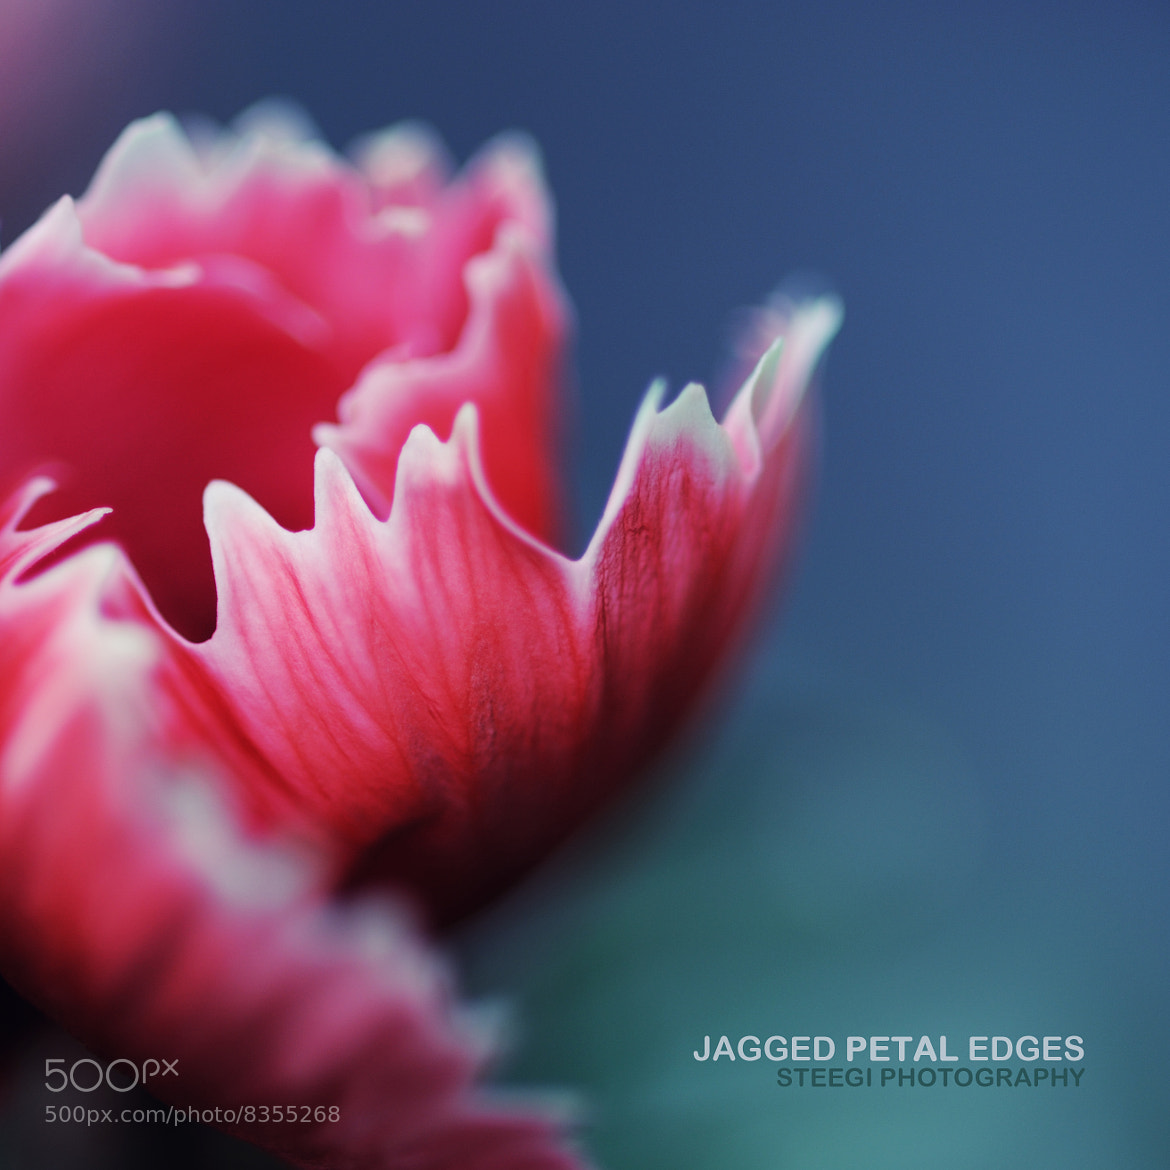 Photograph Jagged Petal Edges by Andreas Steegmann on 500px